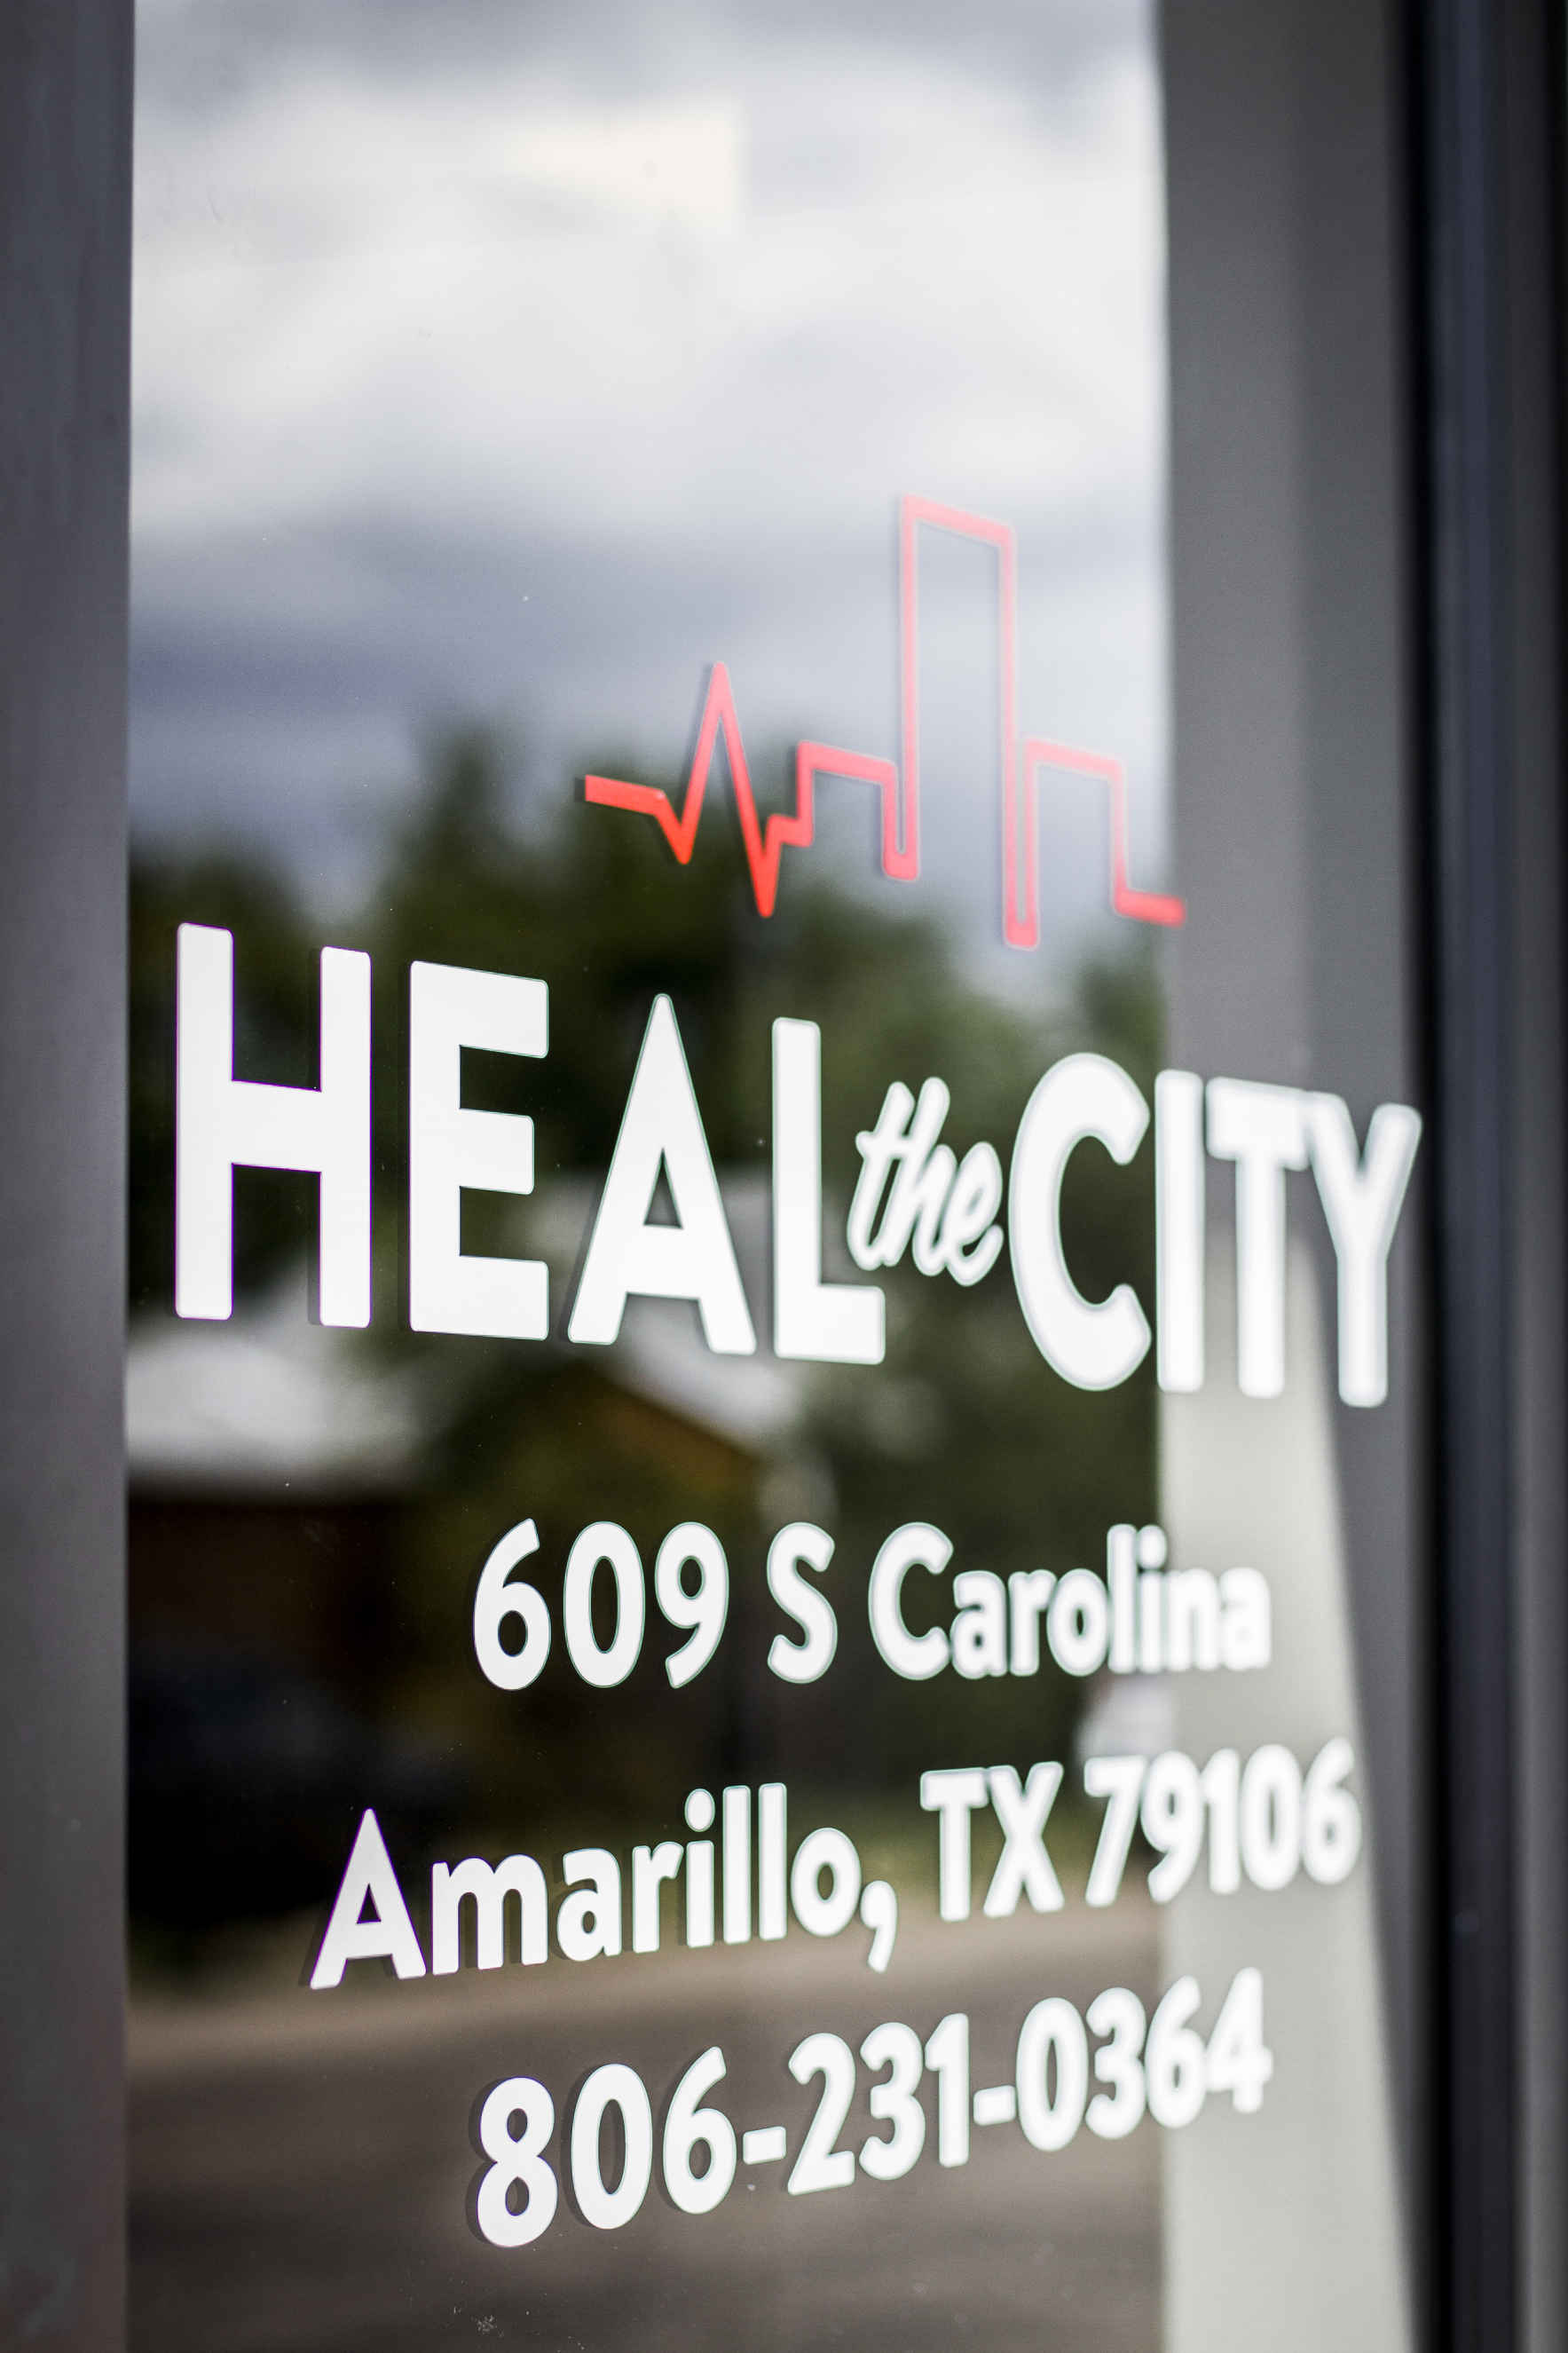 Your gift allows Heal the City to pursue our mission to provide free quality medical care to the uninsured of our community. image